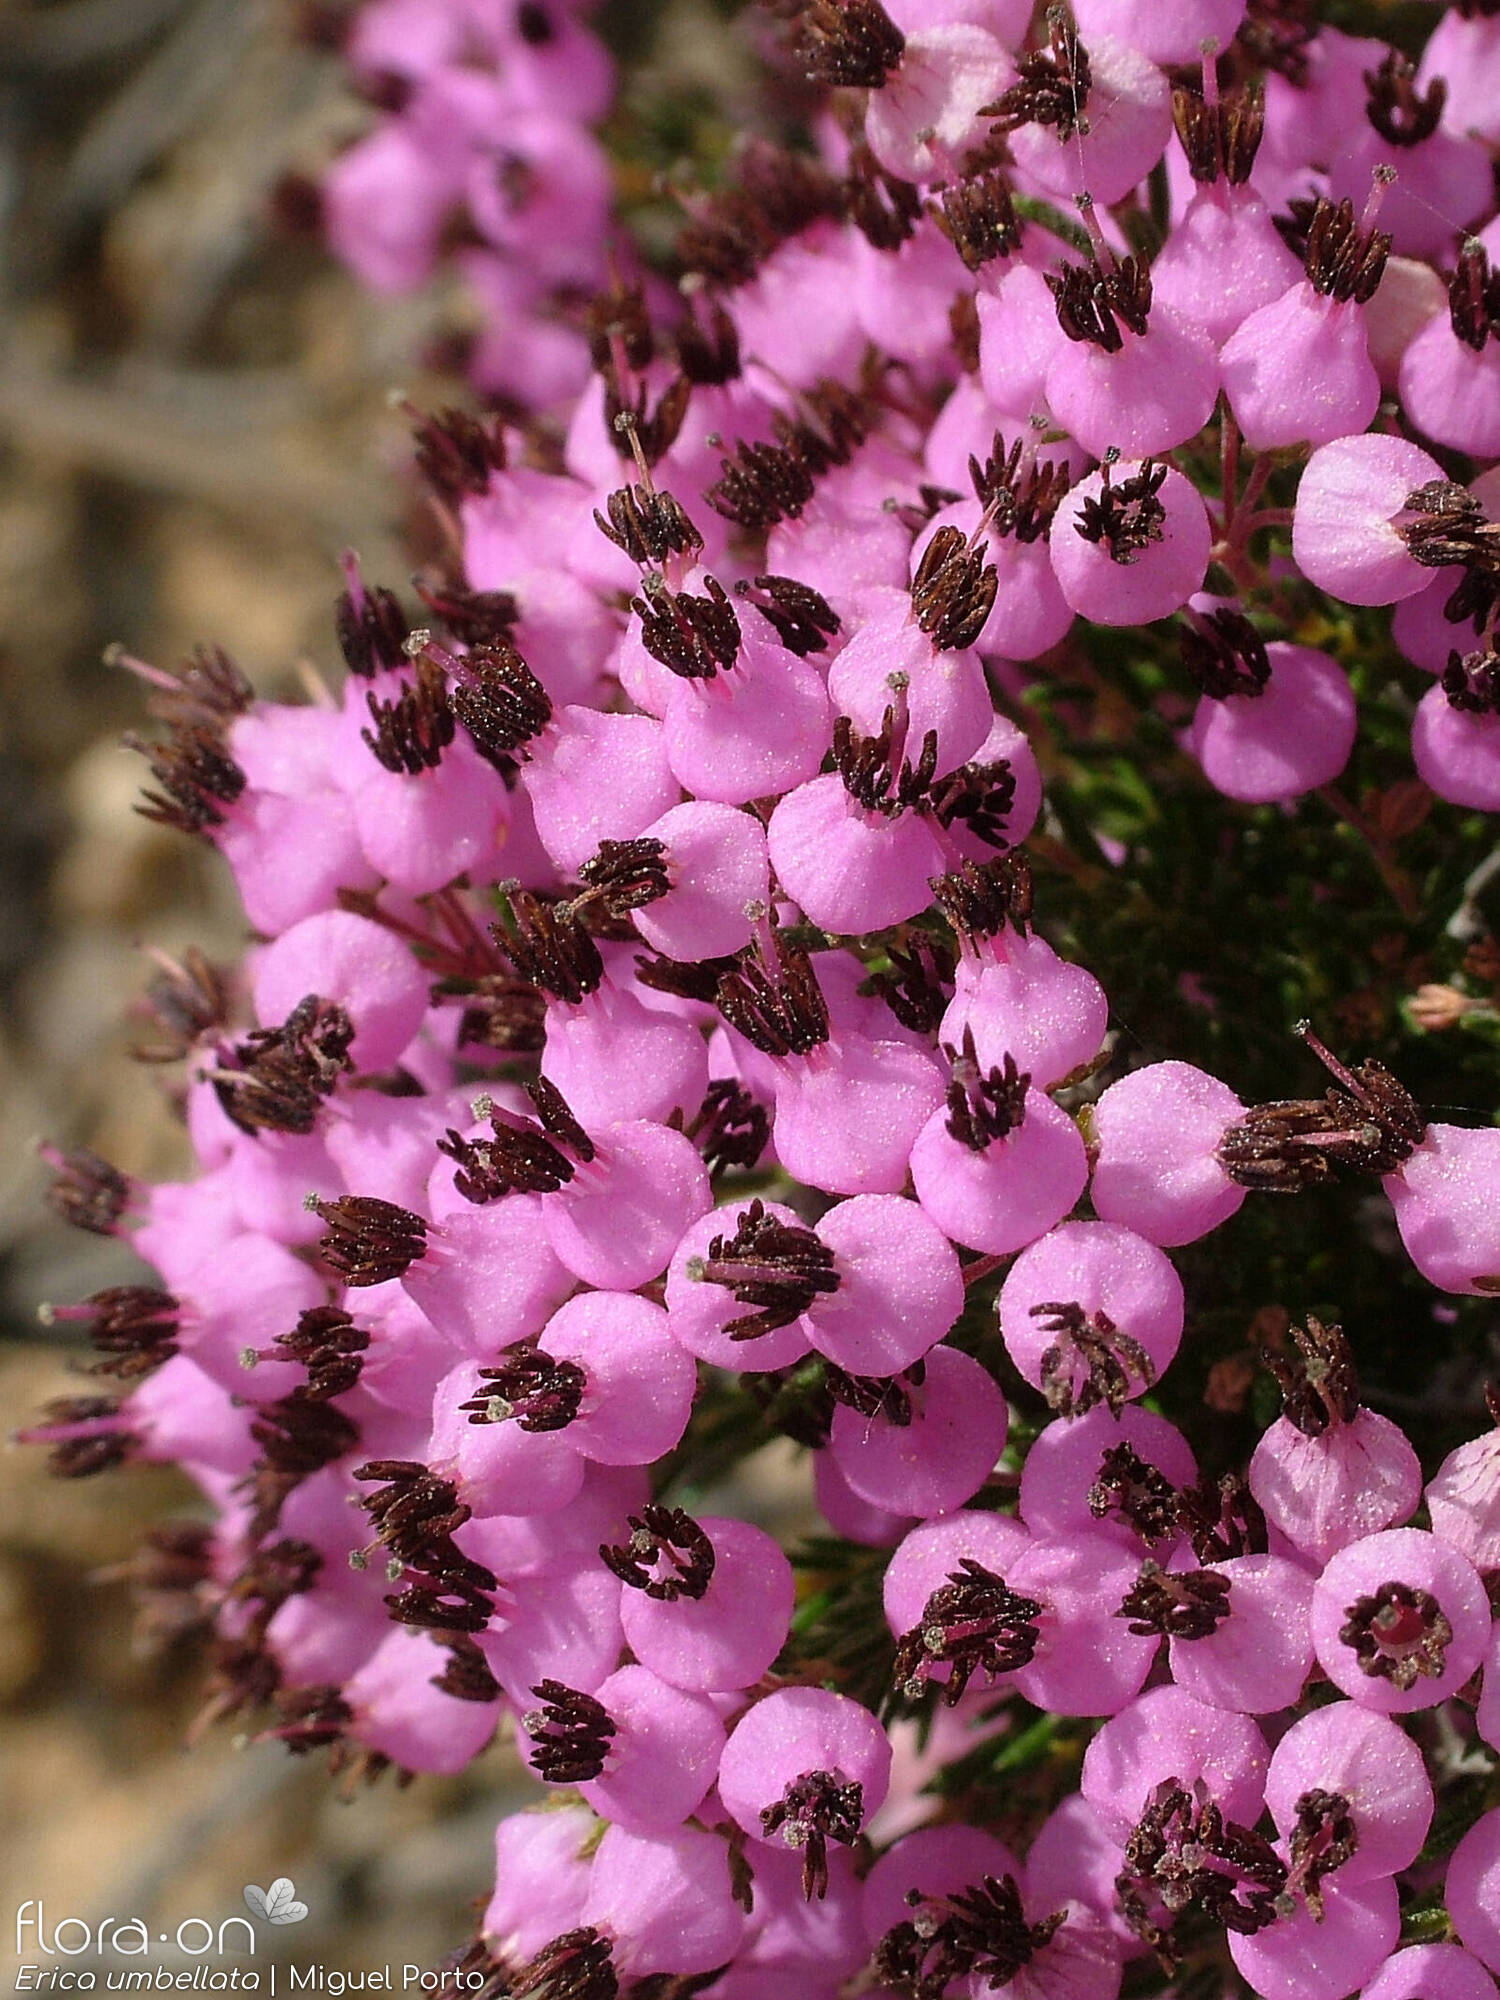 Erica umbellata - Flor (close-up) | Miguel Porto; CC BY-NC 4.0